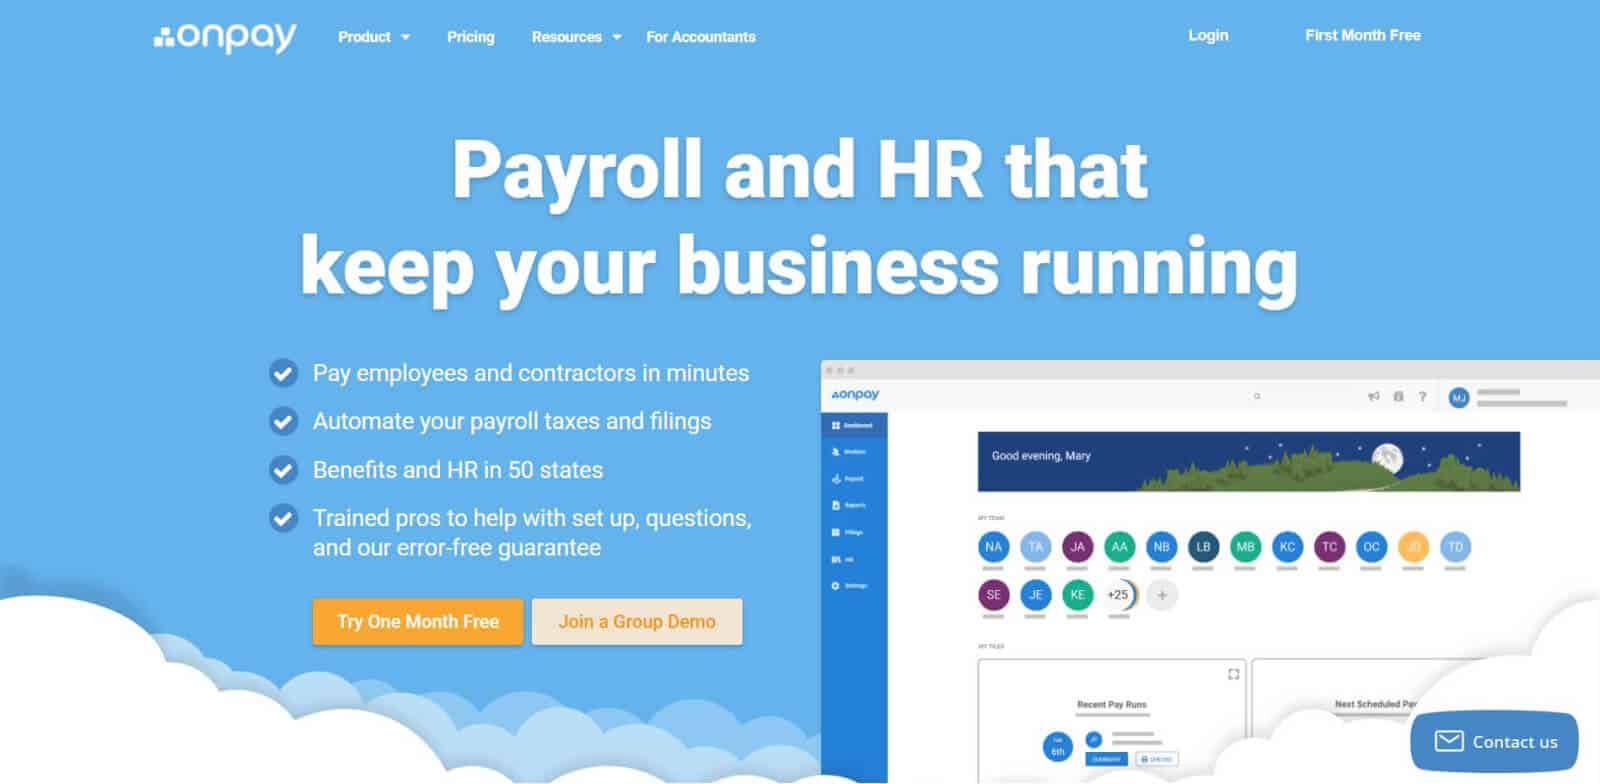 OnPay is one of the most affordable payroll management and HR management solutions on the market